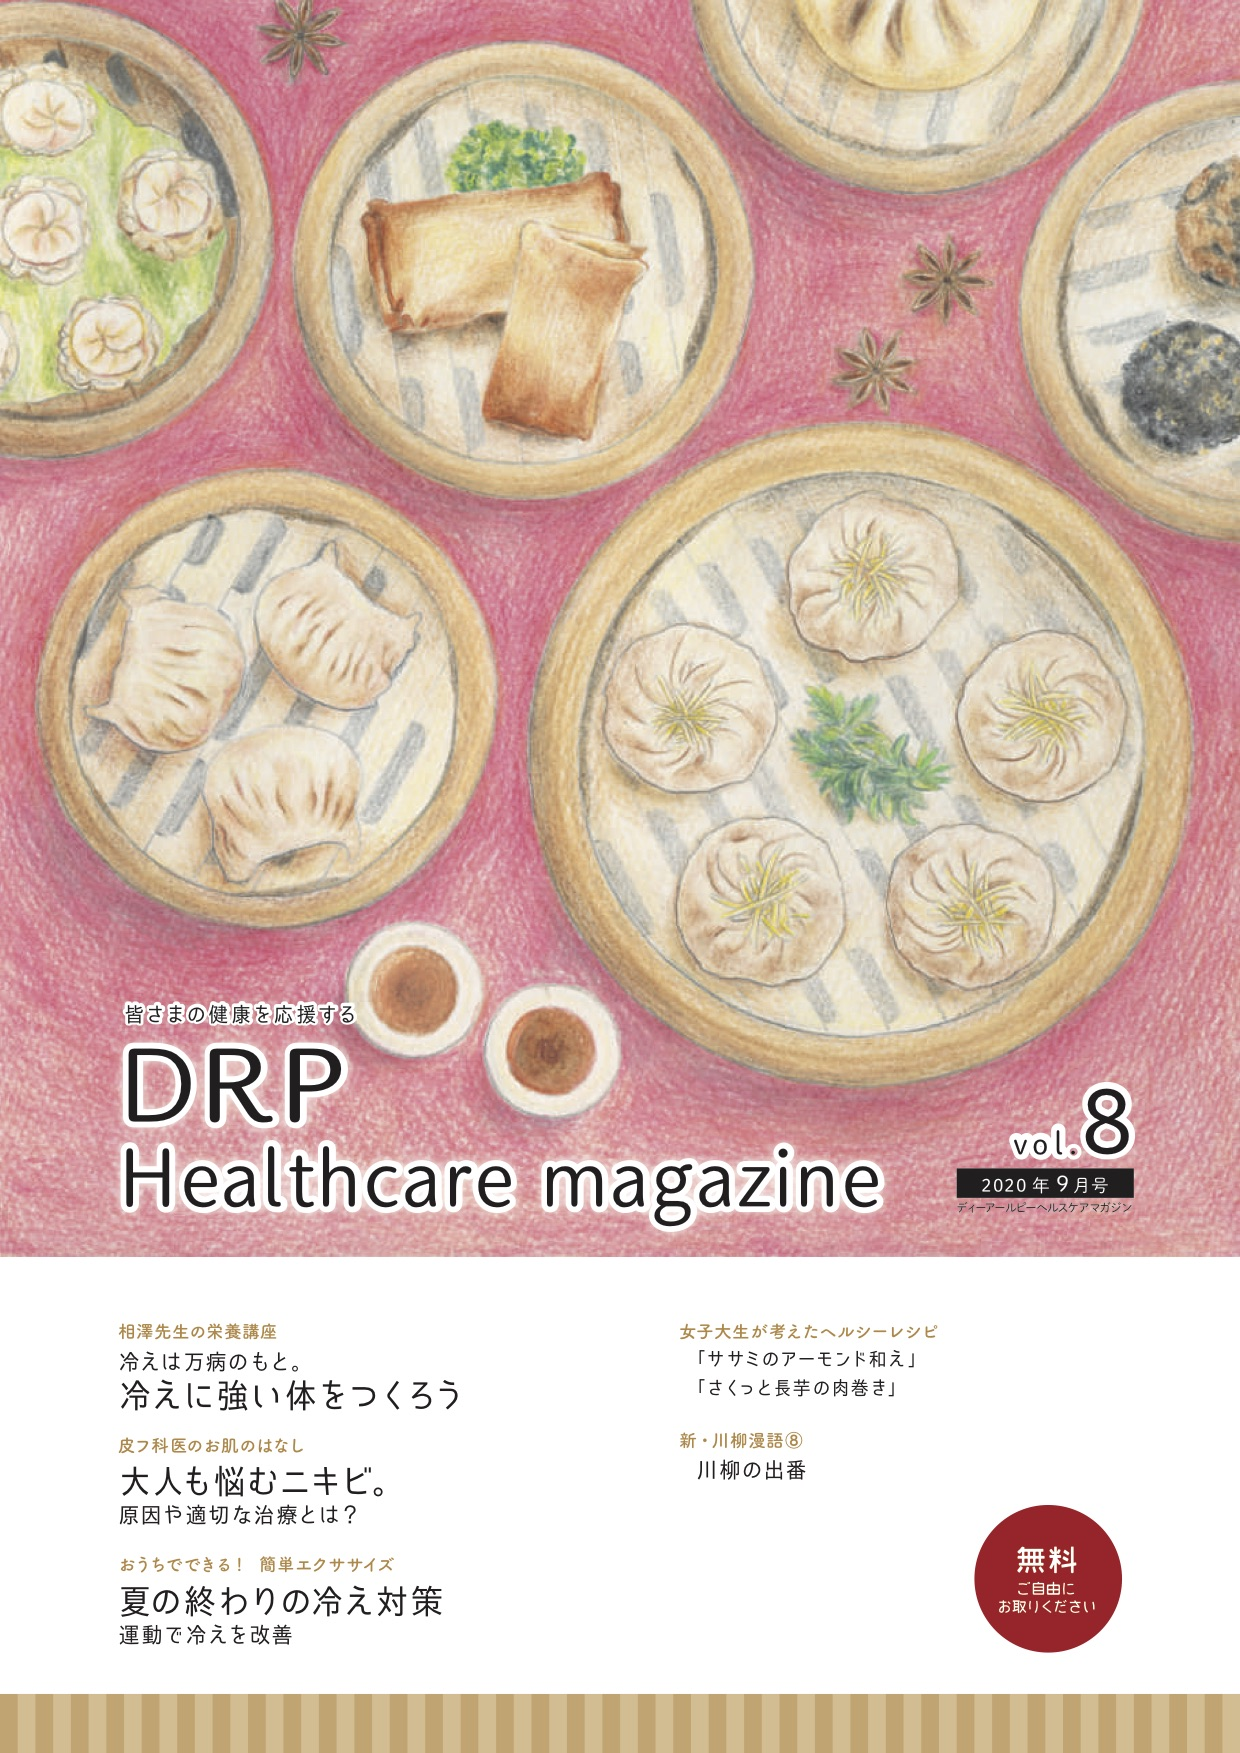 DRP Healthcare magazine 2020年9月号